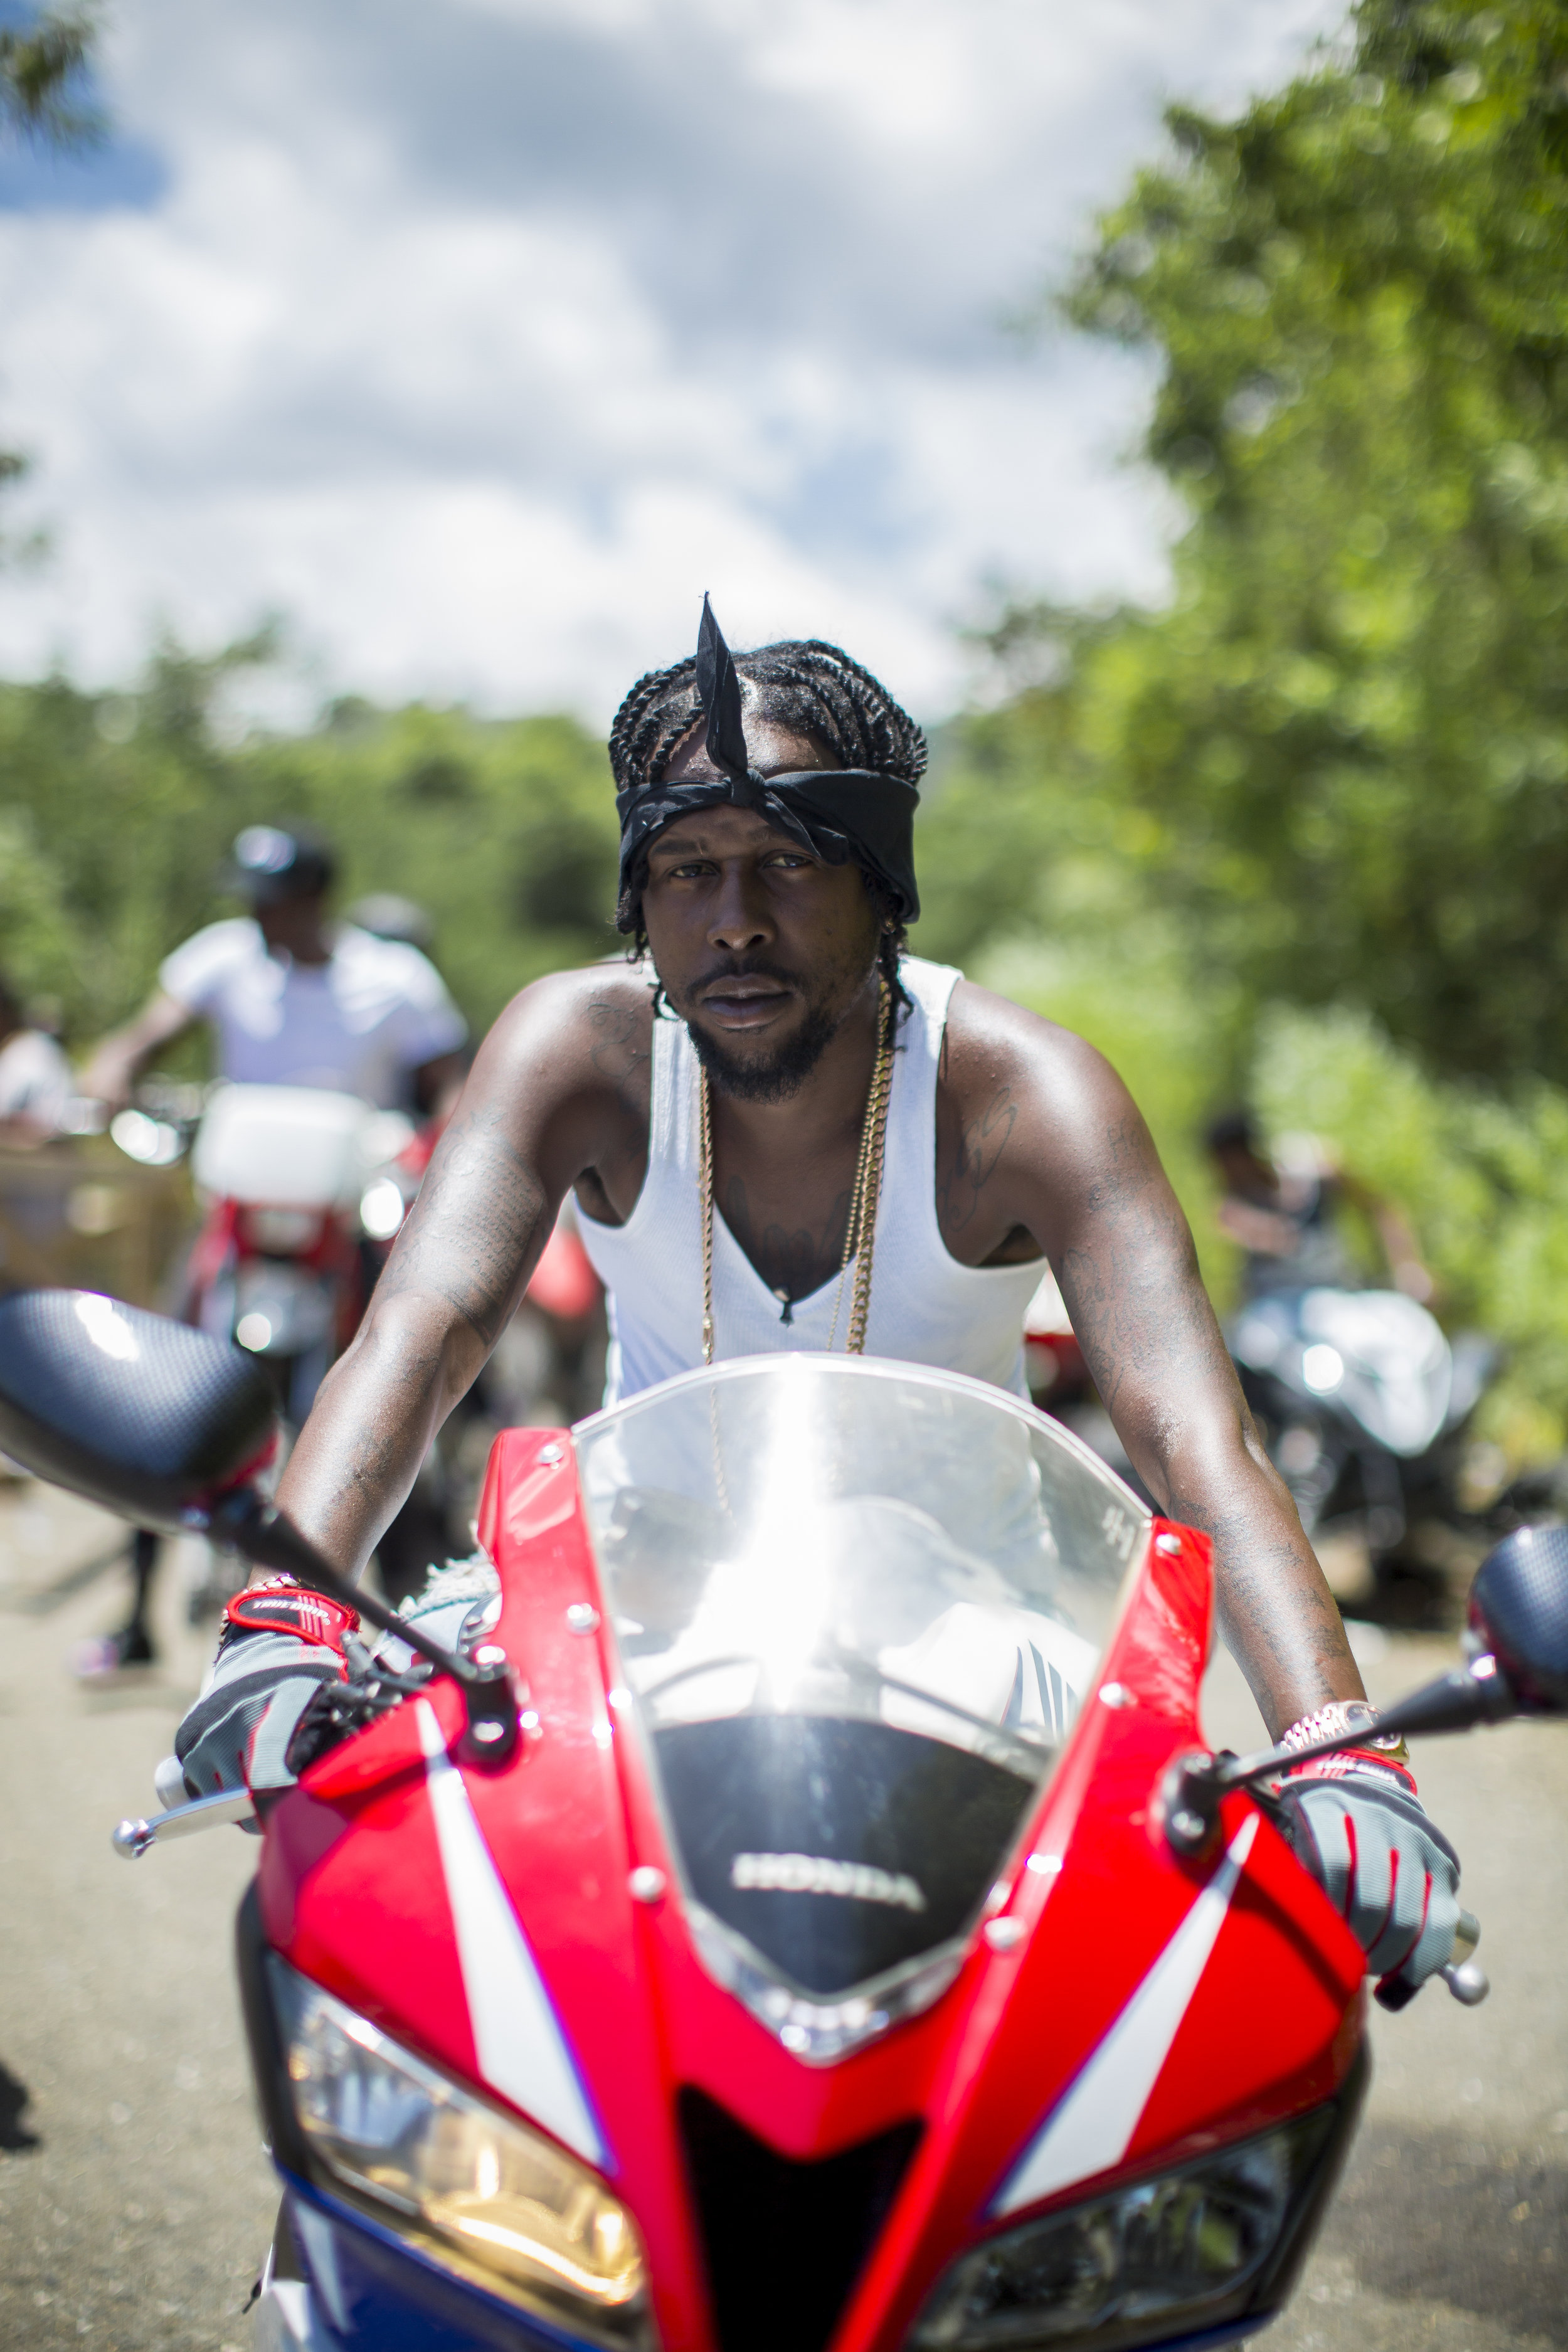 Popcaan for The Fader